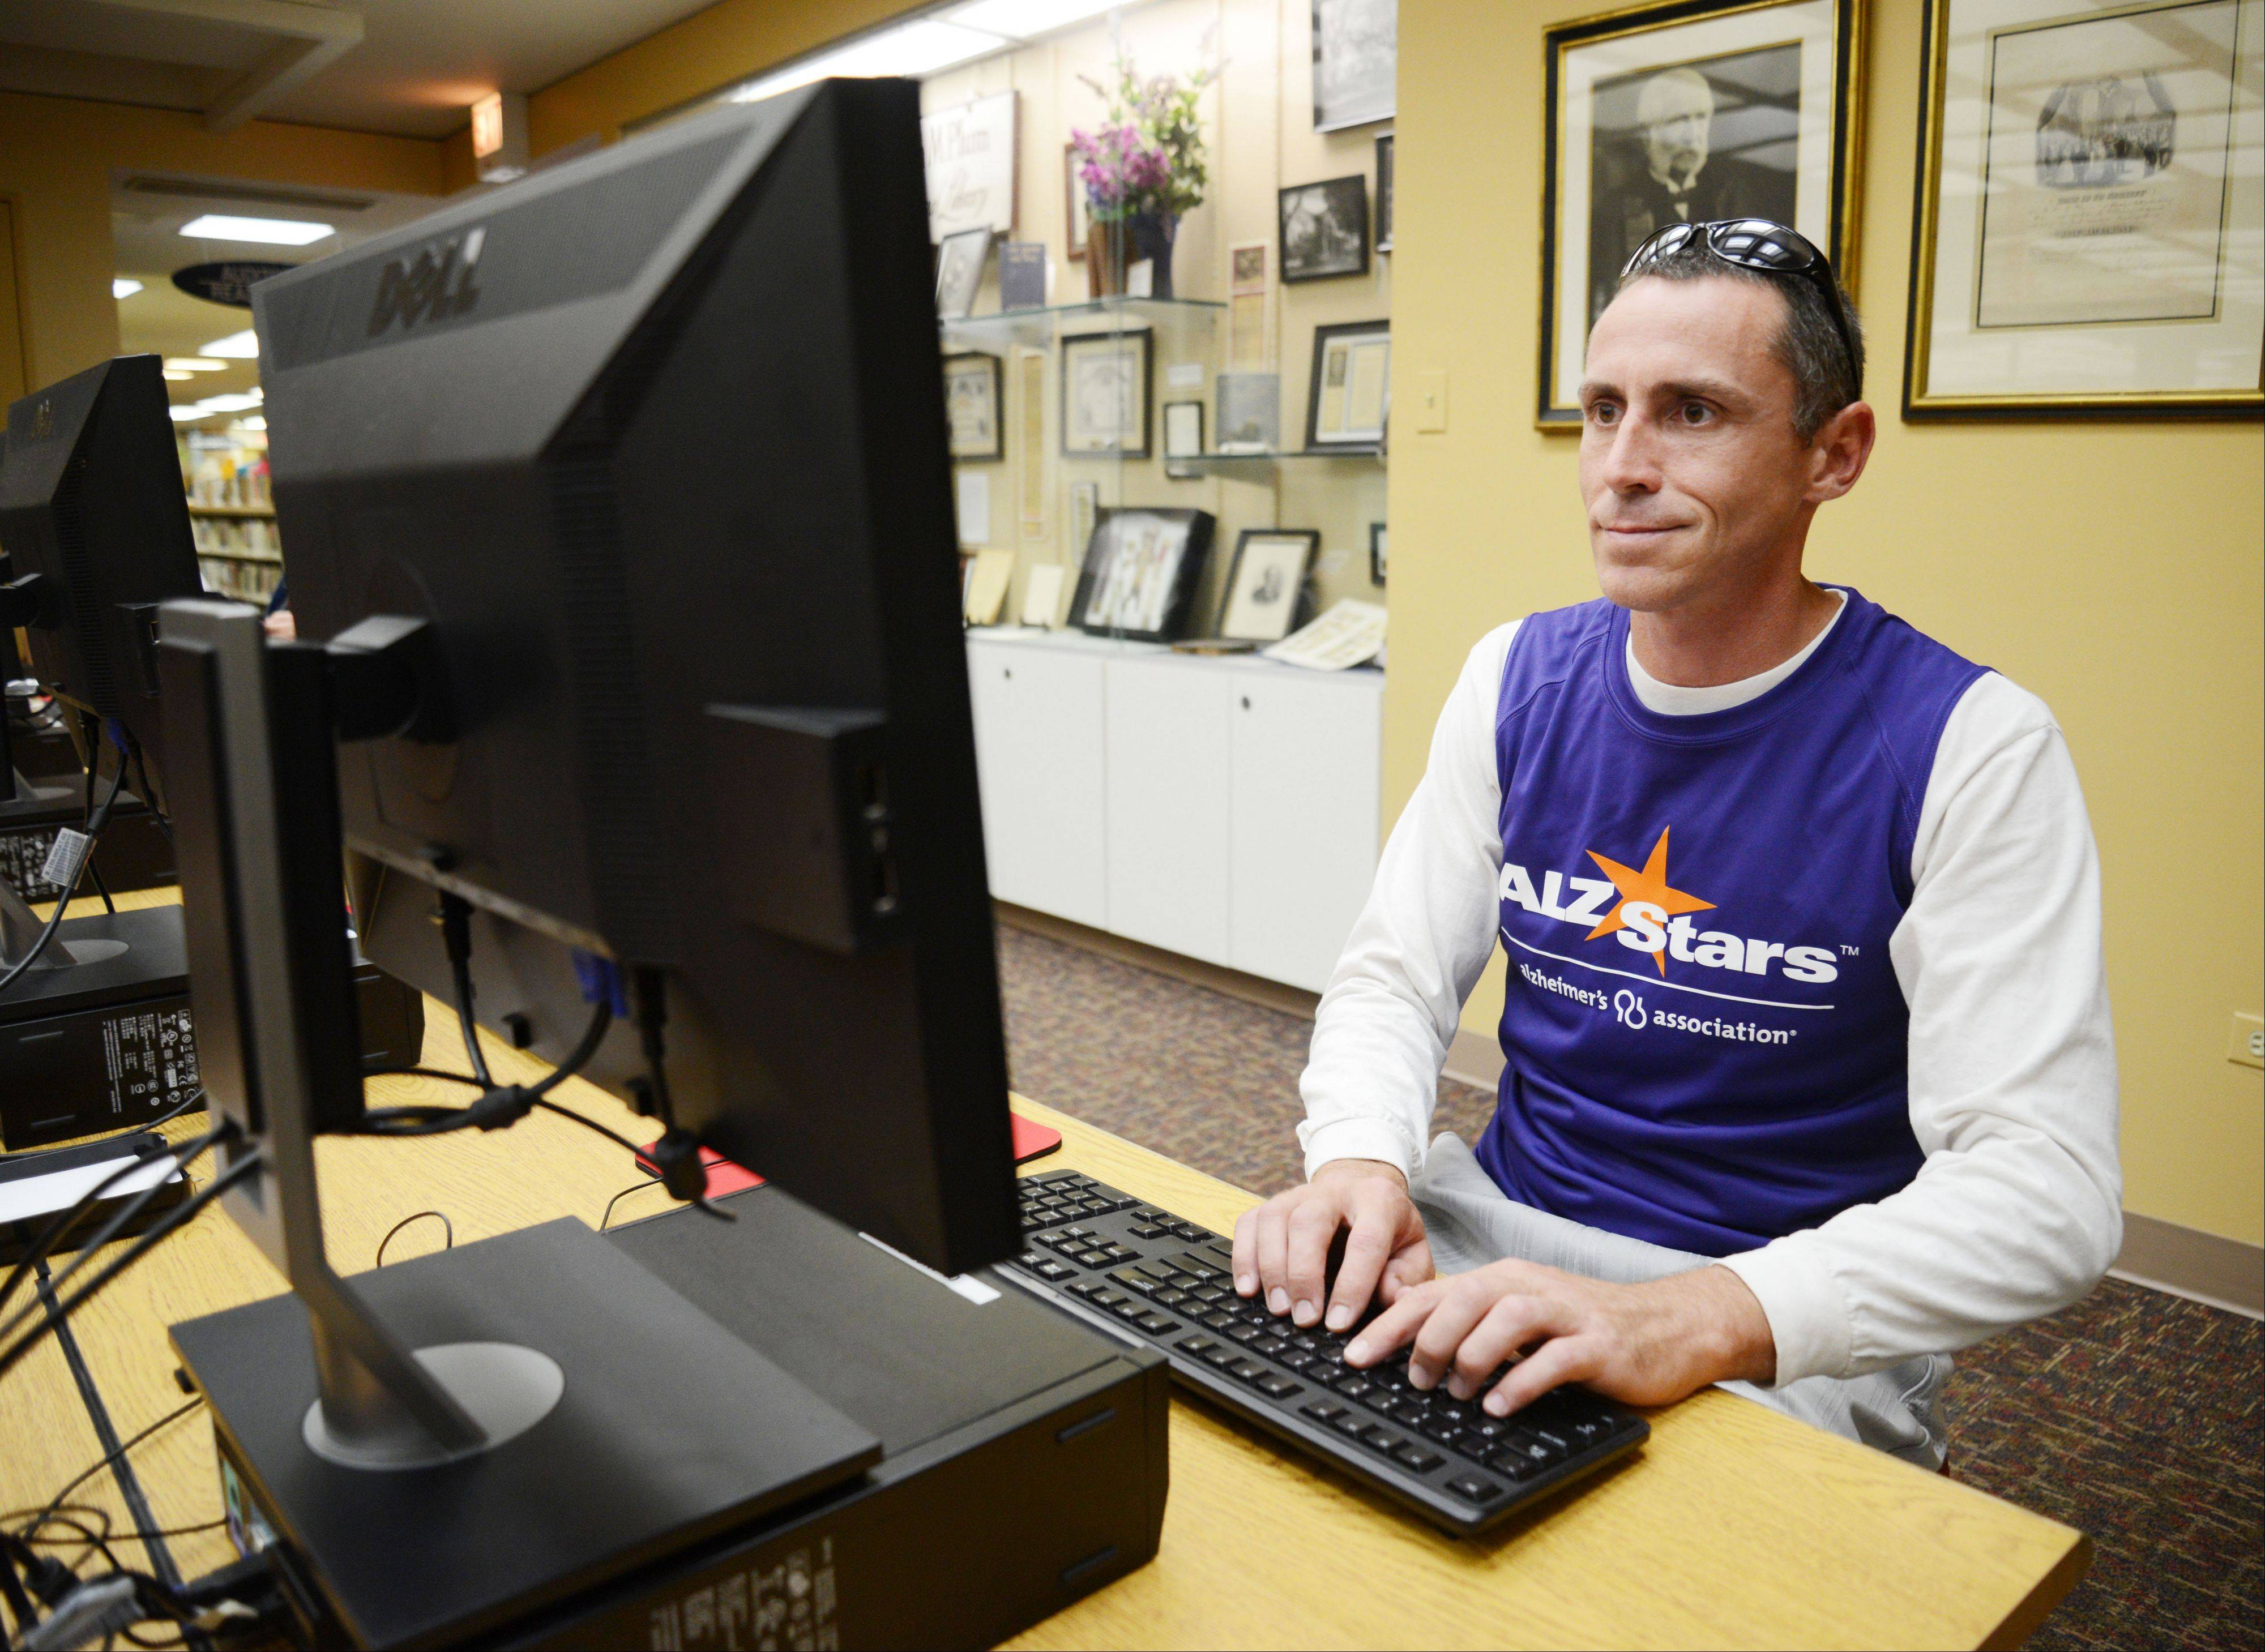 William Glass of Lombard did a great deal of research at the Helen Plum Library before embarking on a 750-mile journey to walk, alone, to Atlanta to raise money and awareness for the fight against Alzheimer's disease. His mother was diagnosed with the disease in 2010.